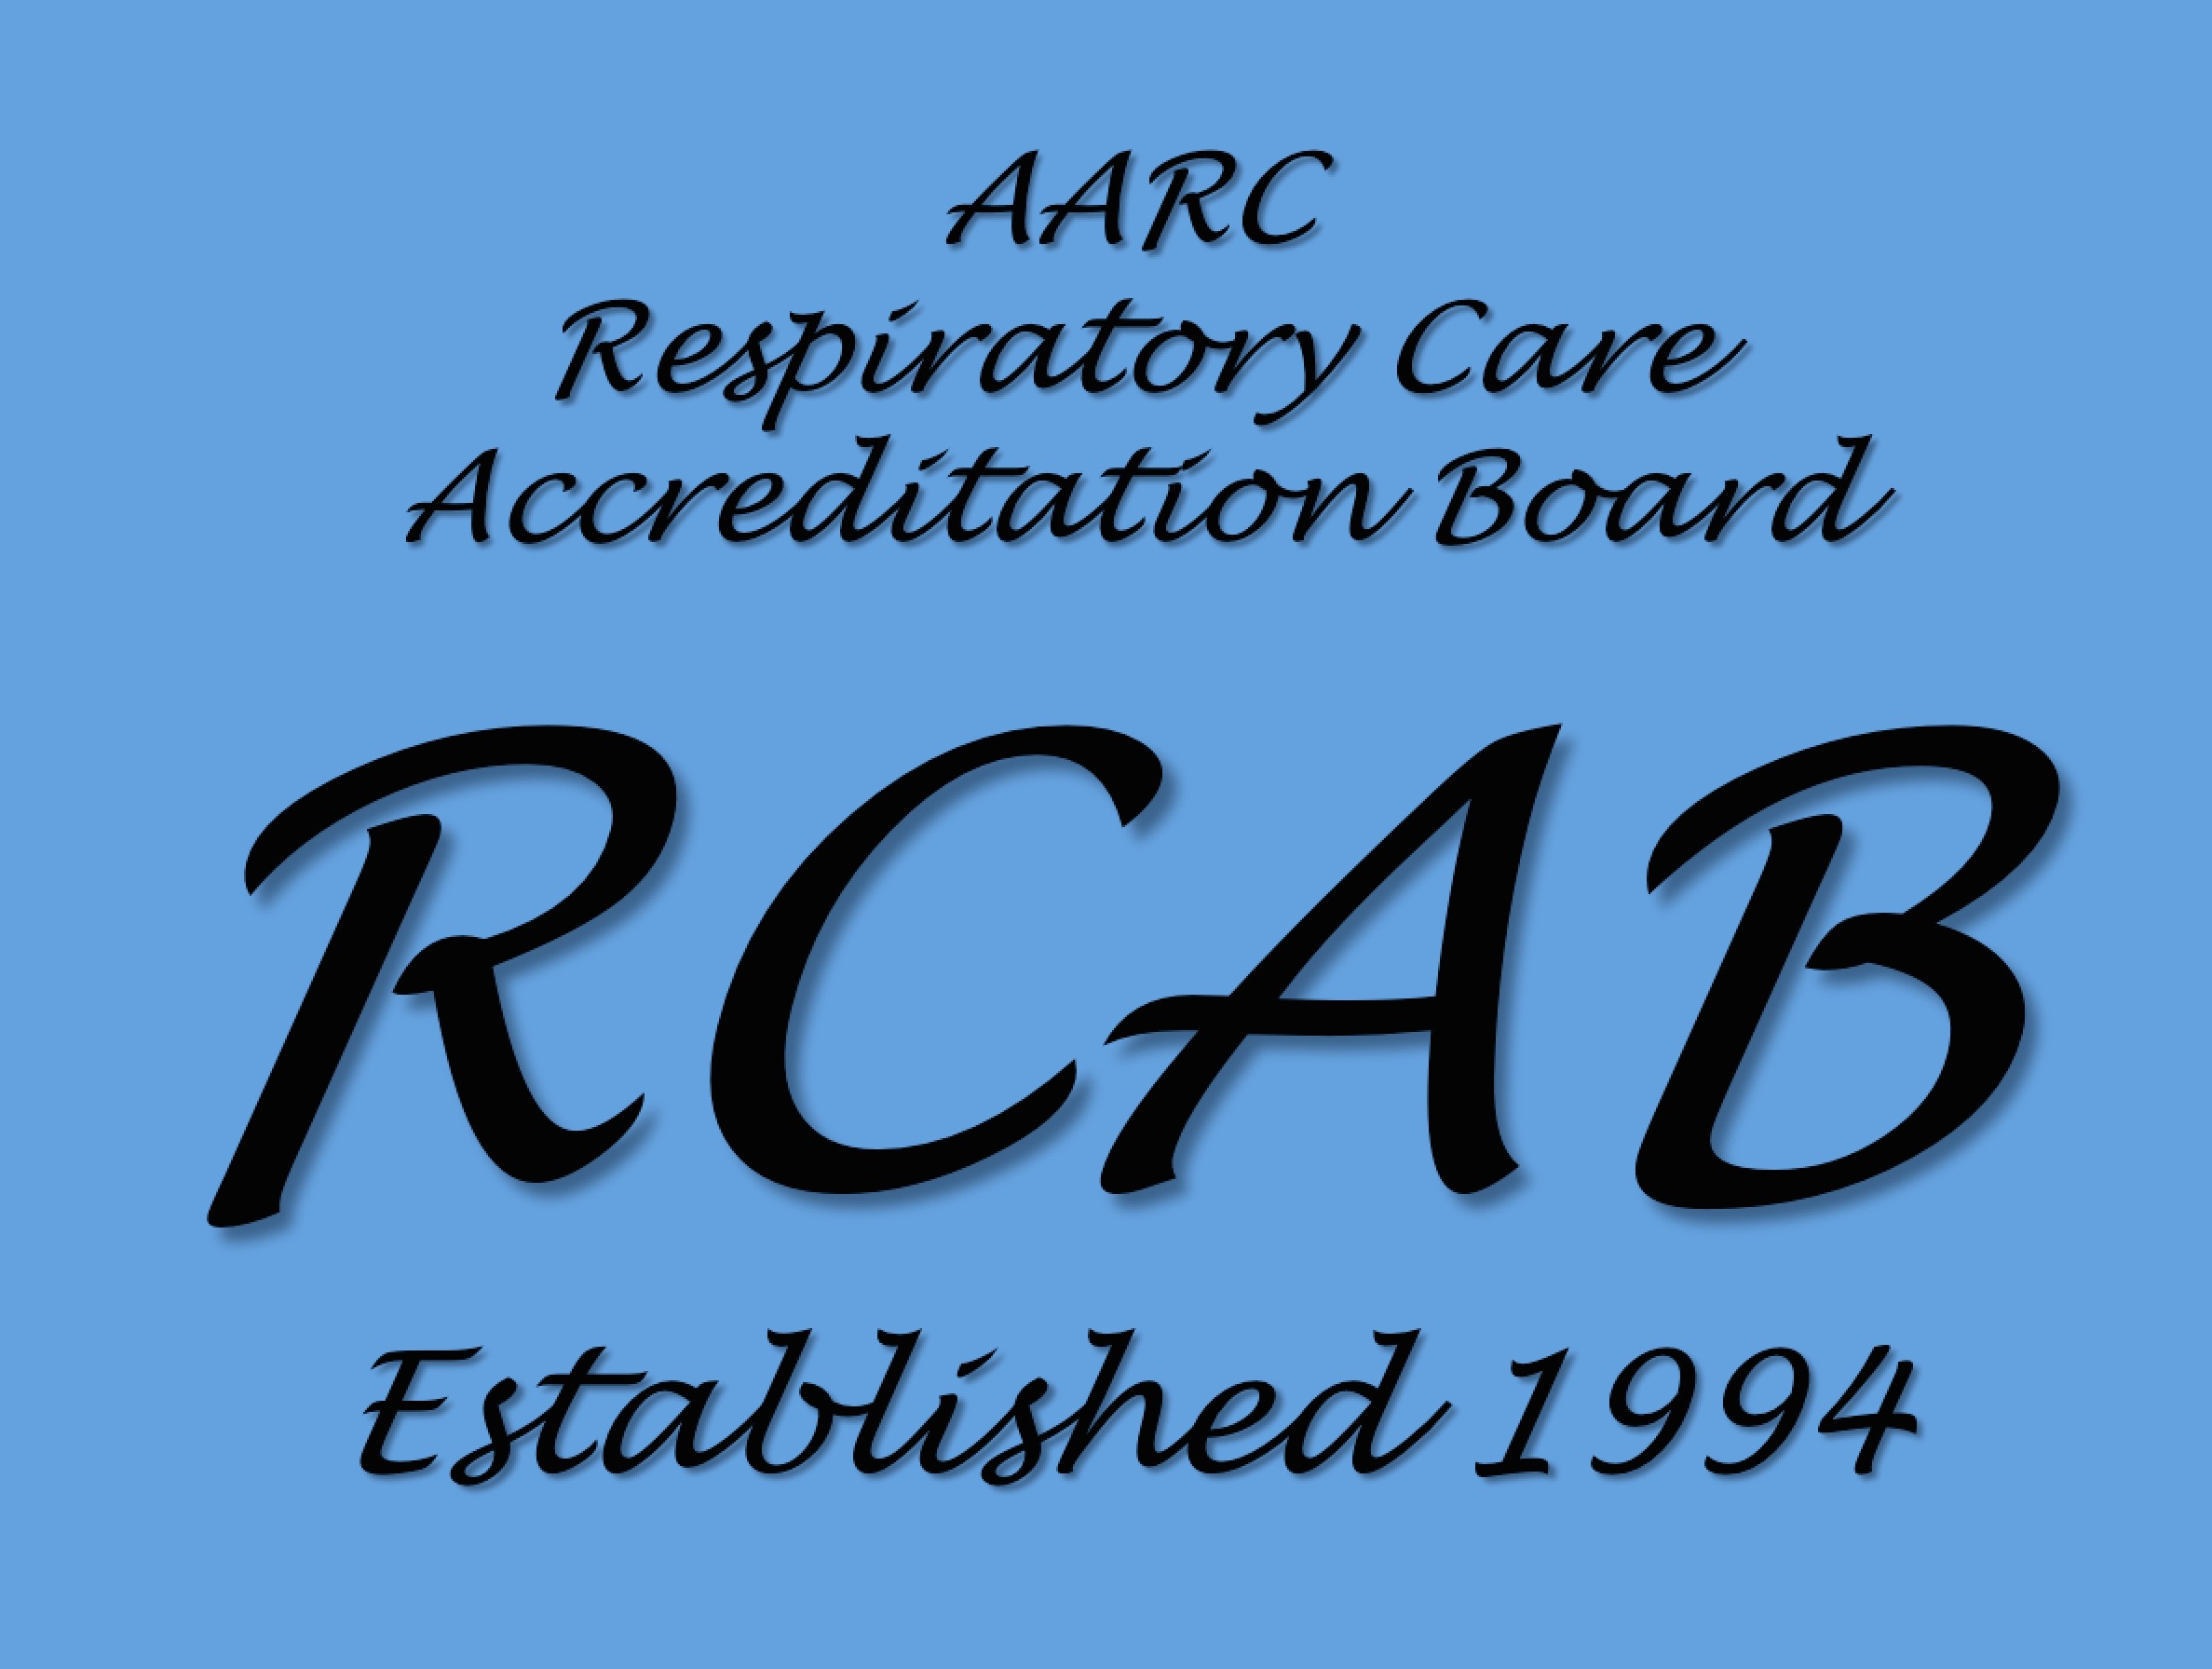 1994 Respiratory Care Accreditation Board Formed